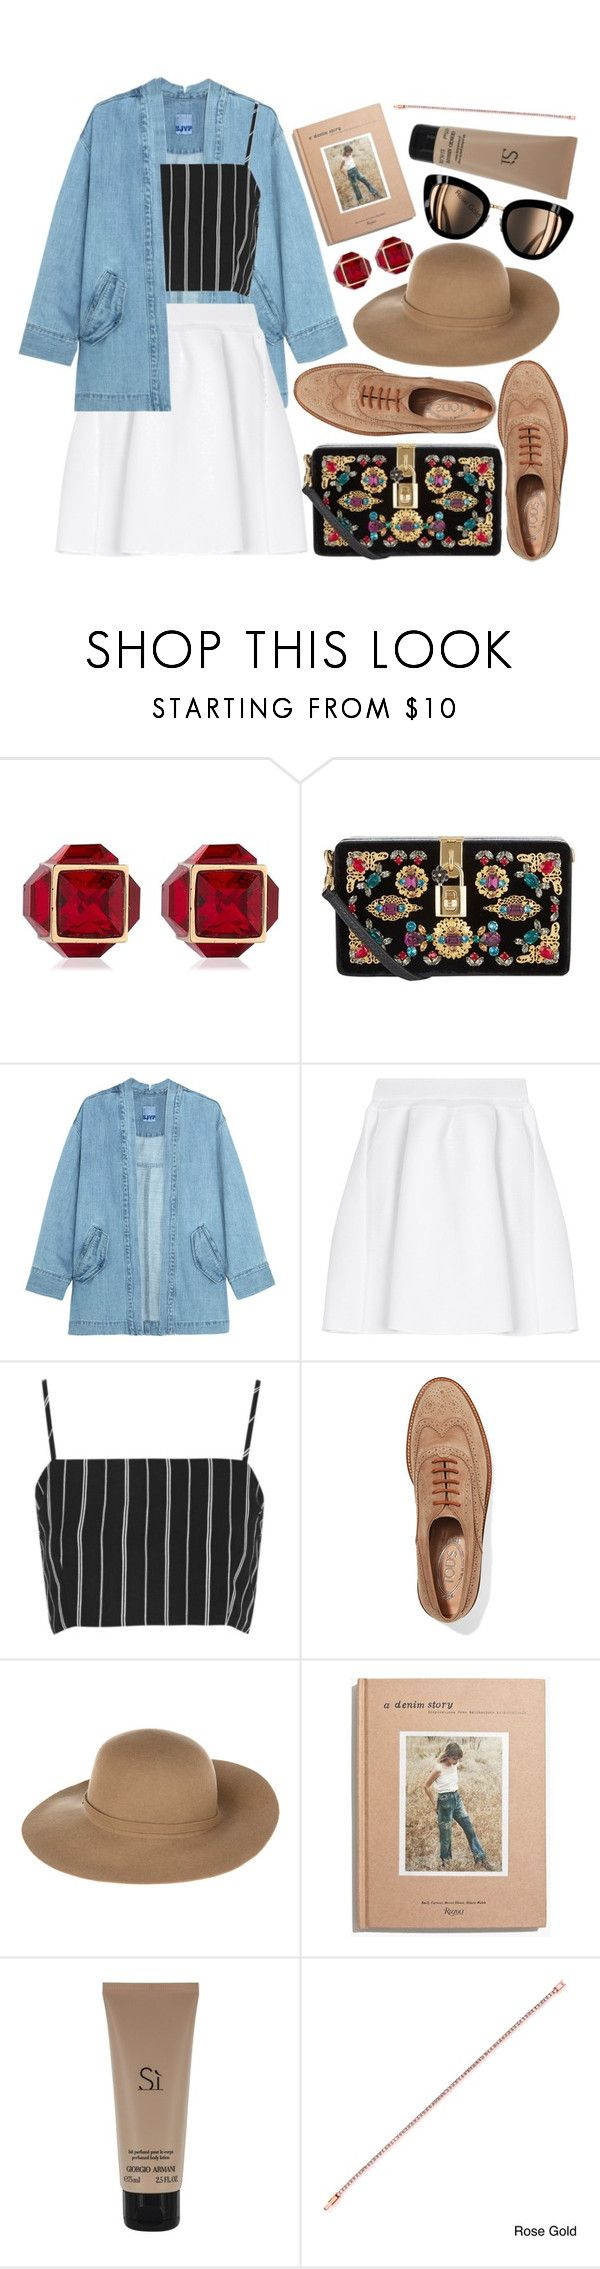 """Outfit (casual) #48"" by tayscutts ❤ liked on Polyvore featuring Vita Fede, Dolce&Gabbana, Steve J & Yoni P, malo, Tod's, Armani Jeans, Madewell, Giorgio Armani and Isla Simone"